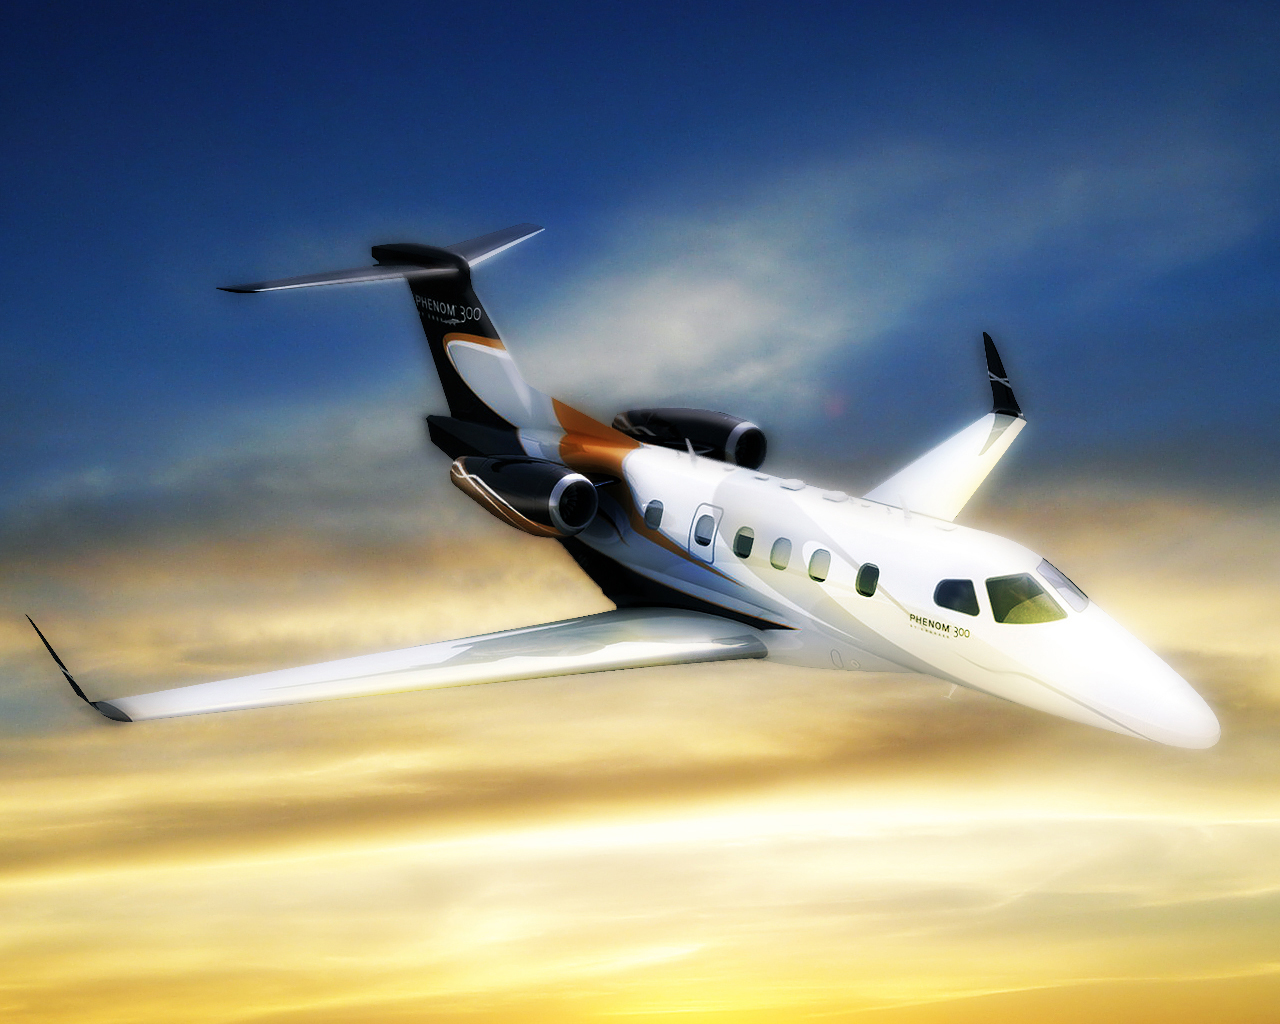 H.I.G. Capital Acquires Flight Options and Orders 100 Phenom 300s